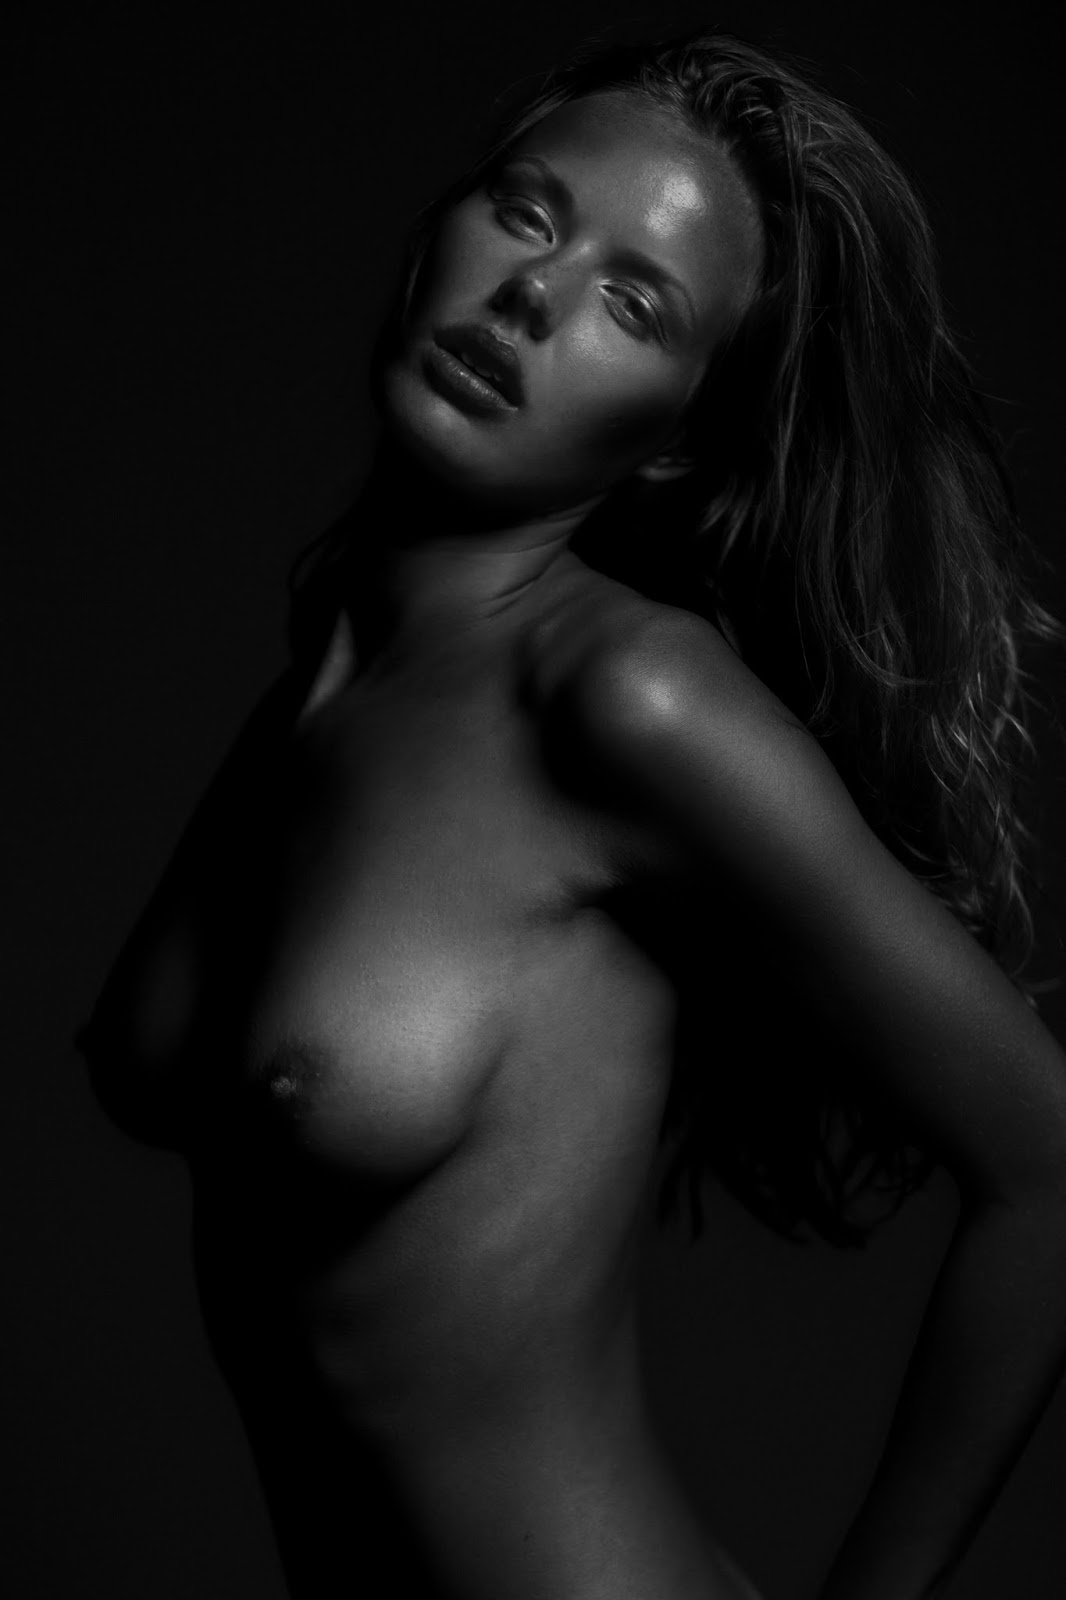 Marlijn hoek topless photos new pictures